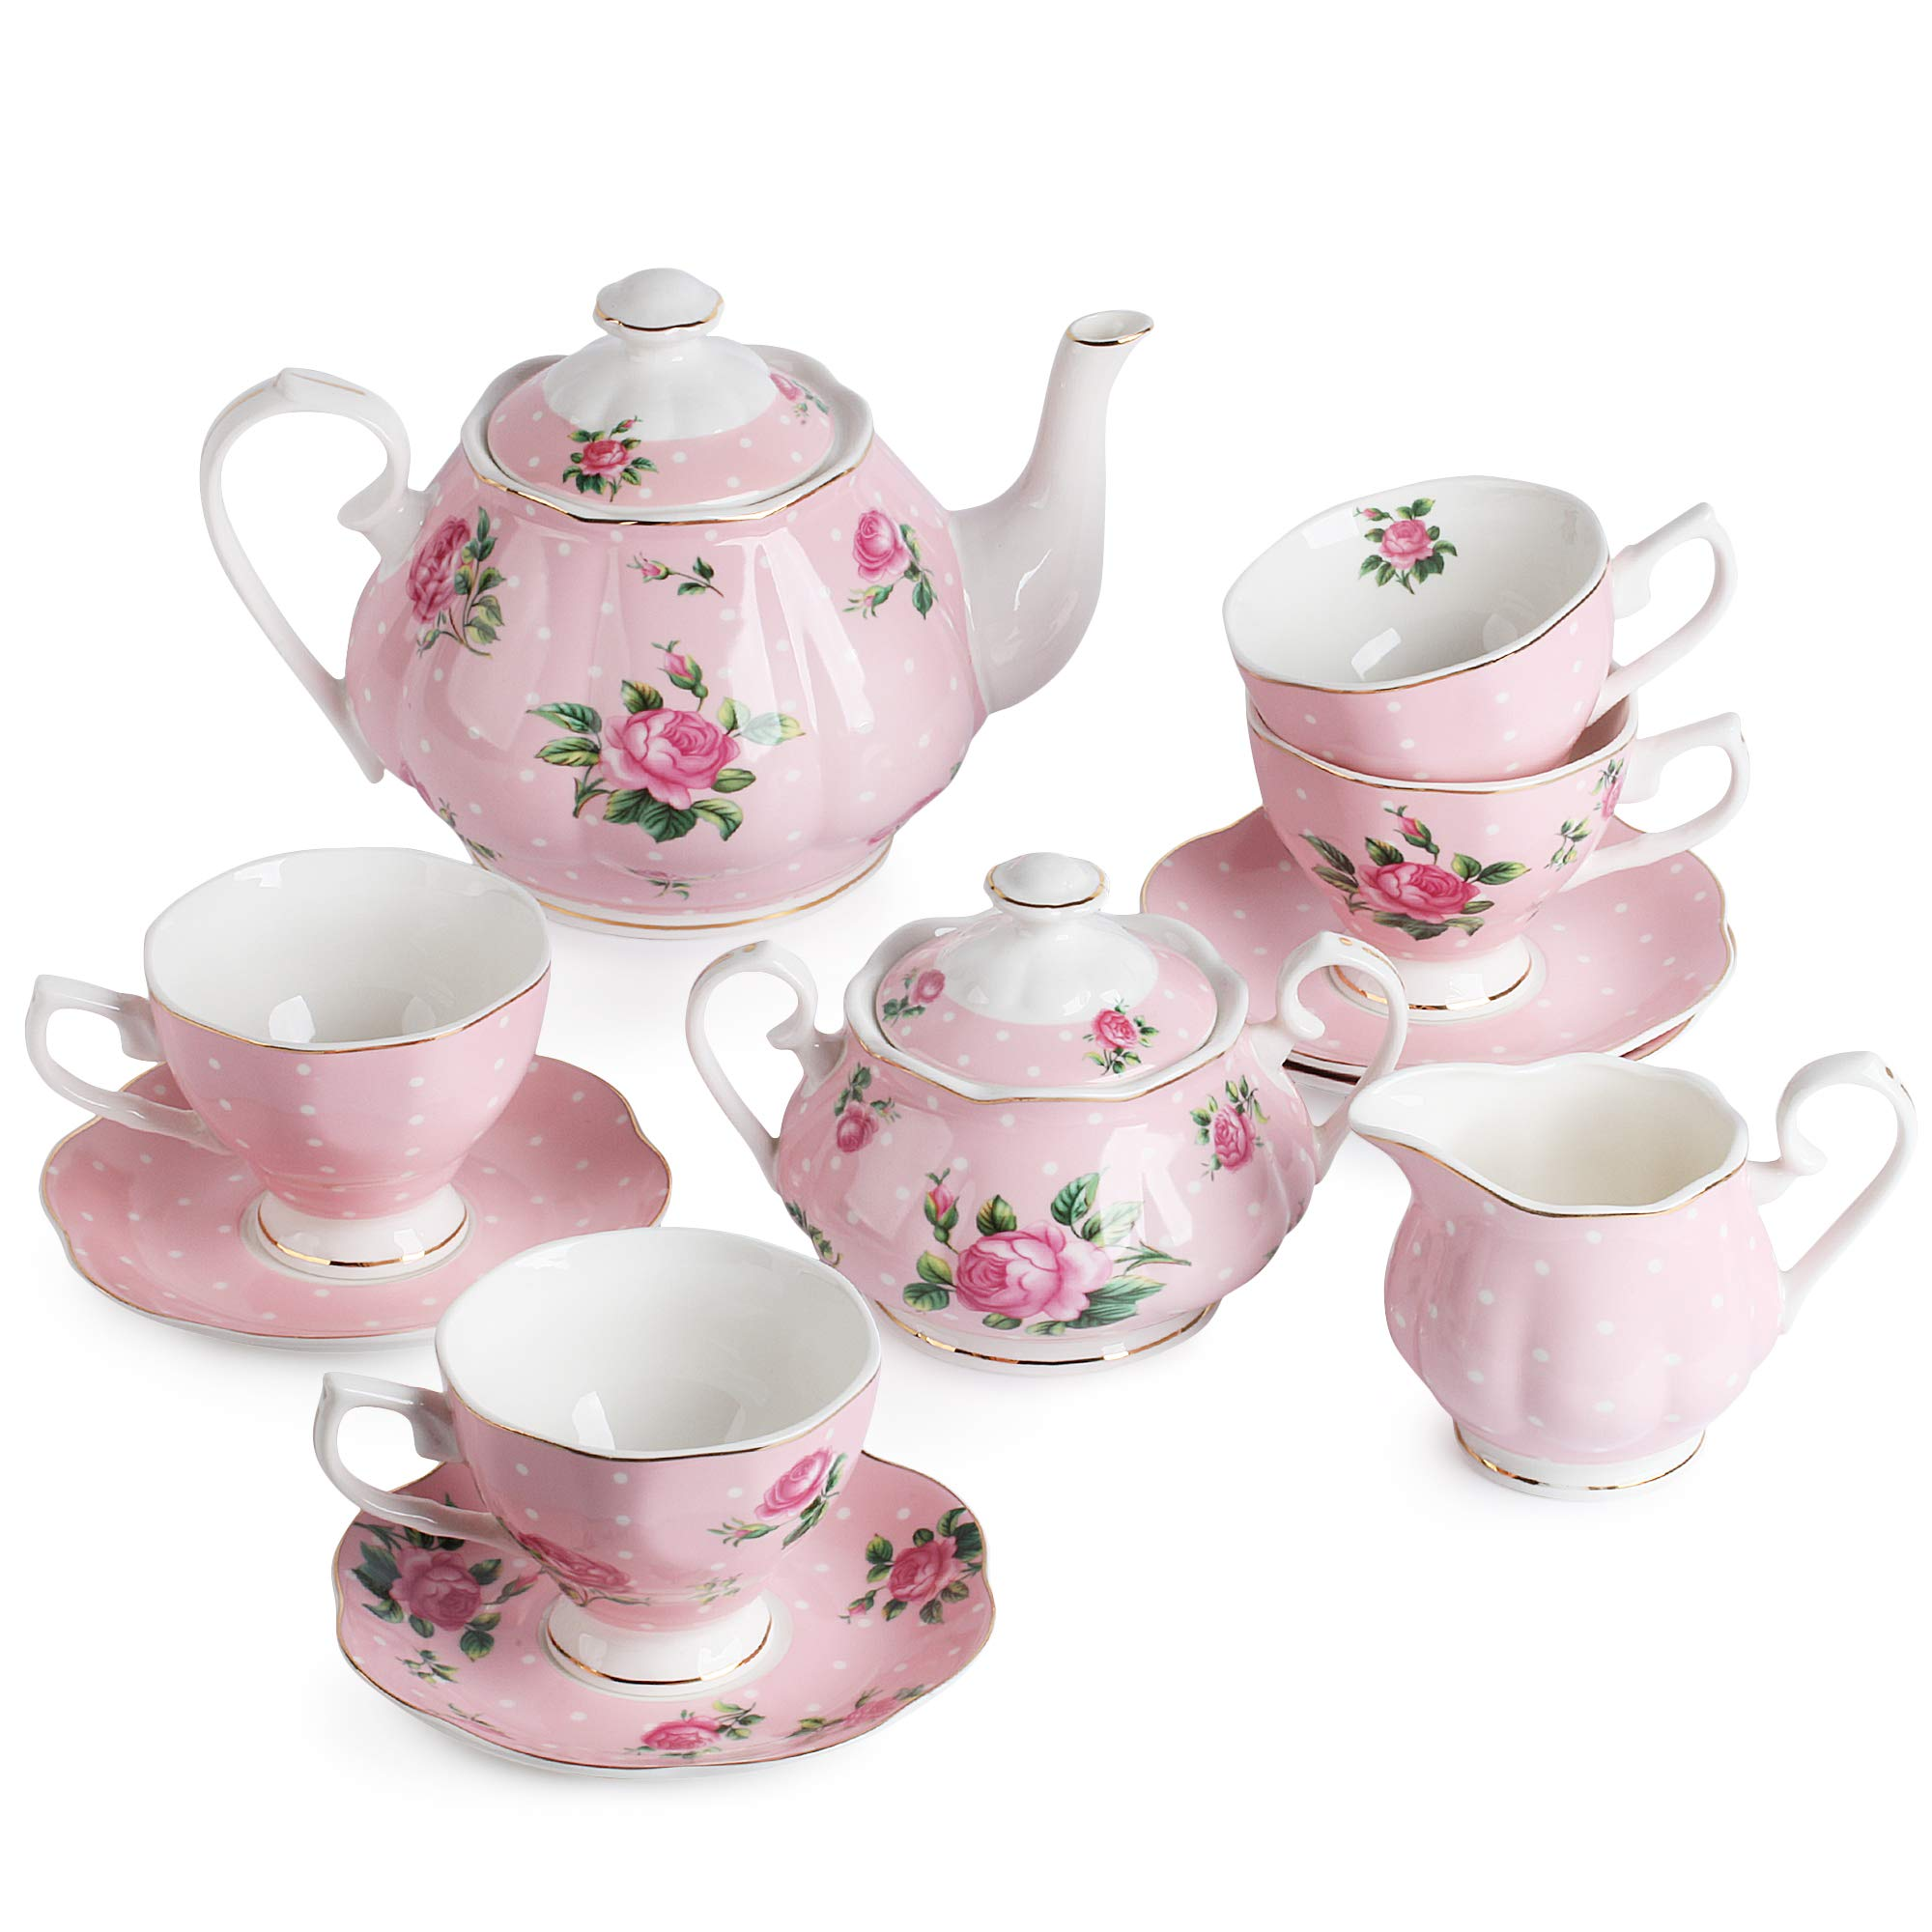 BTäT- Floral Tea Set, Tea cups (8oz), Tea Pot (38oz), Creamer and Sugar Set, Gift box, China Tea Set, Tea Sets for Women, Tea Cups and Saucer Set, Tea Set for Adults, 4 Tea Cups Set, Porcelain Tea Set by Brew To A Tea